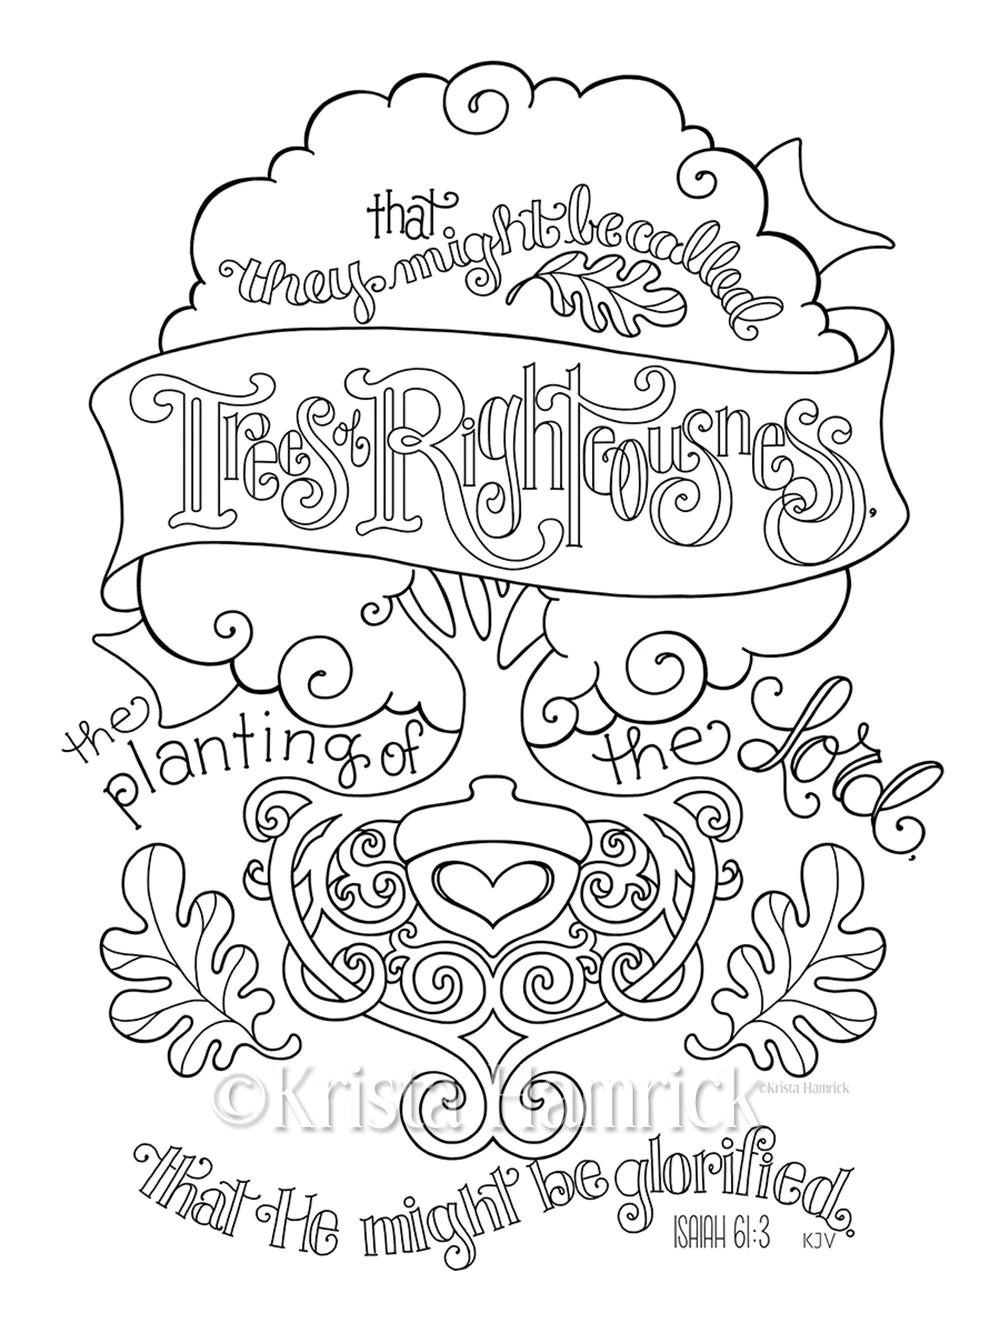 Trees of Righteousness coloring page 8.5X11 Bible